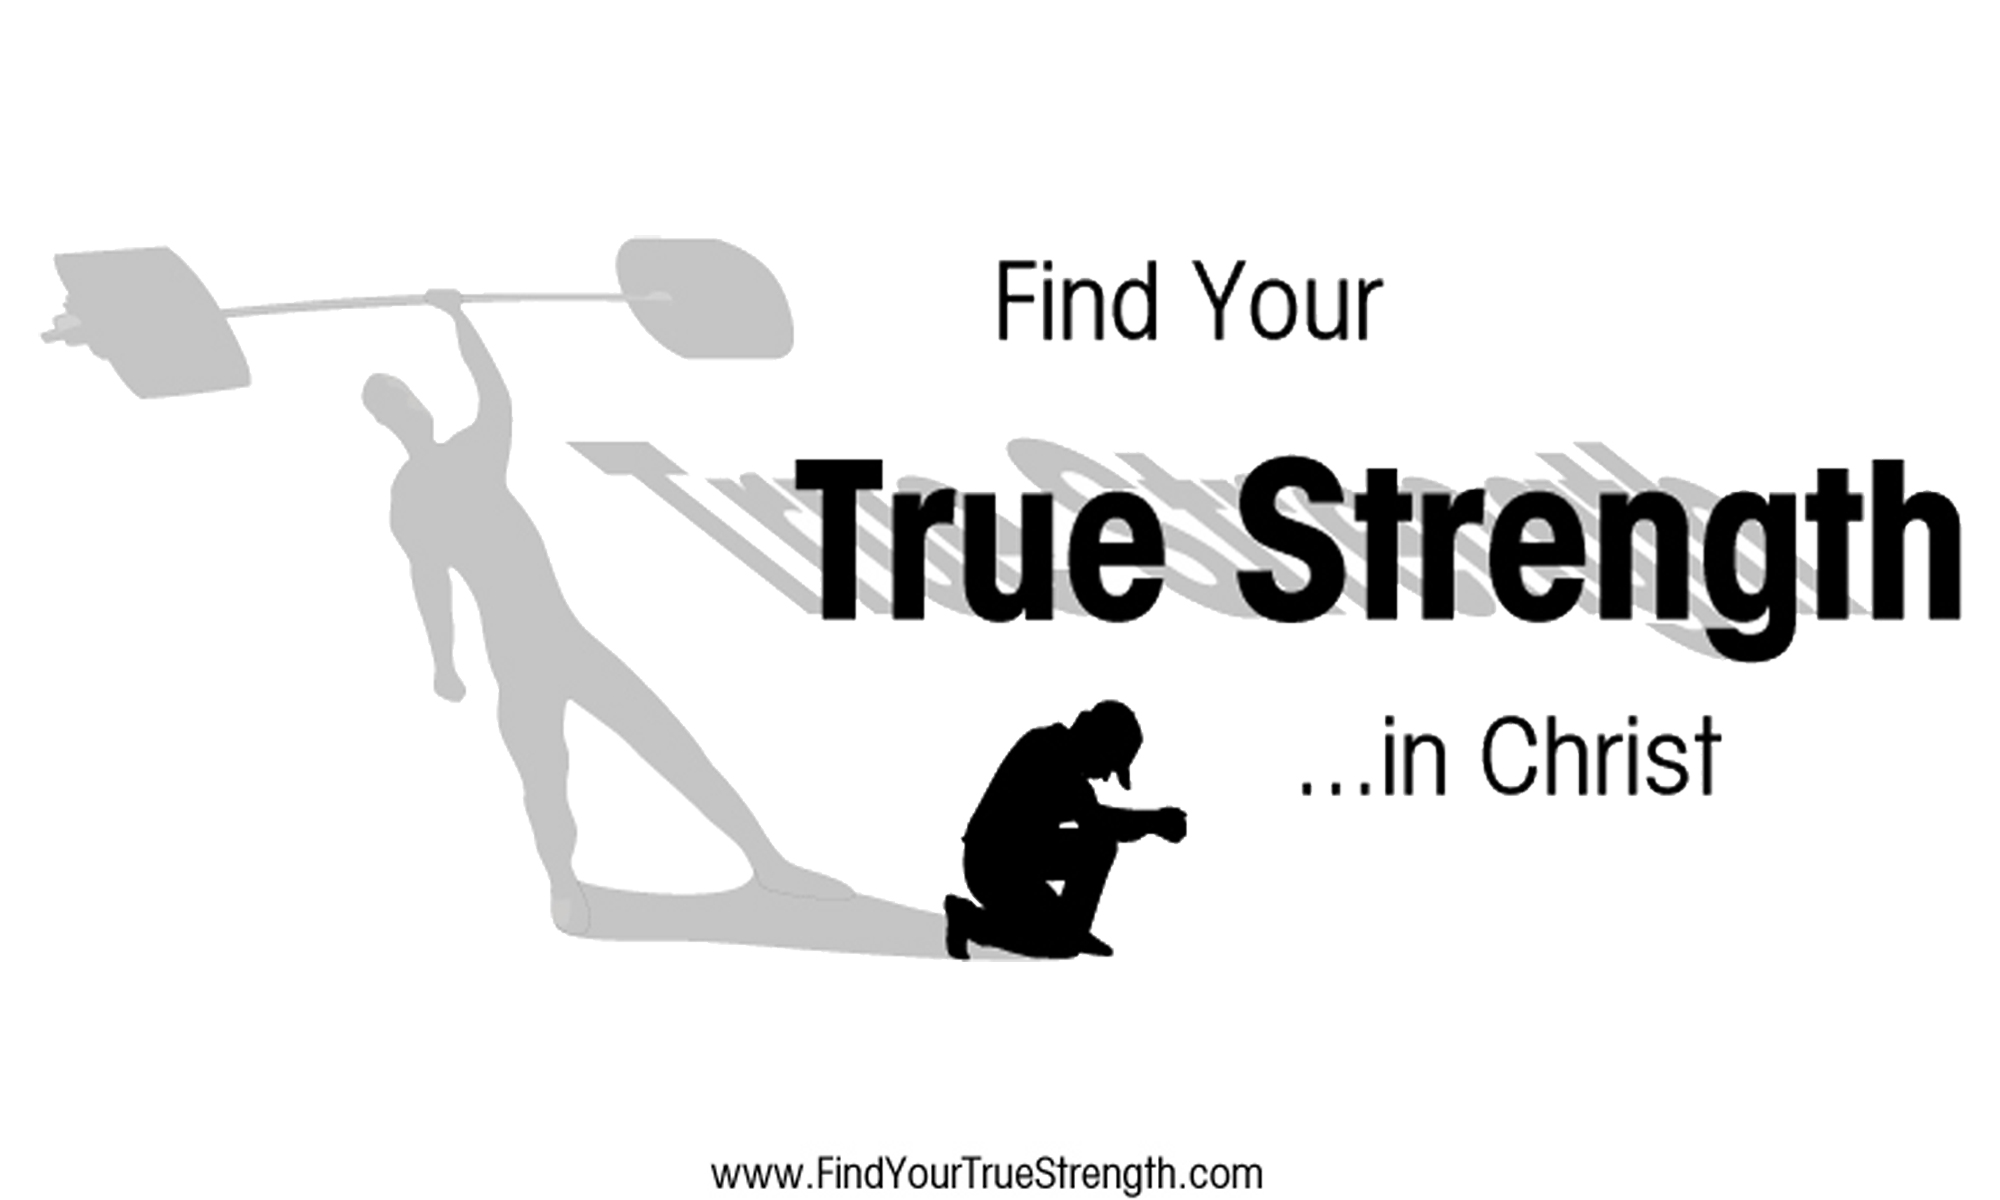 What is True Strength?